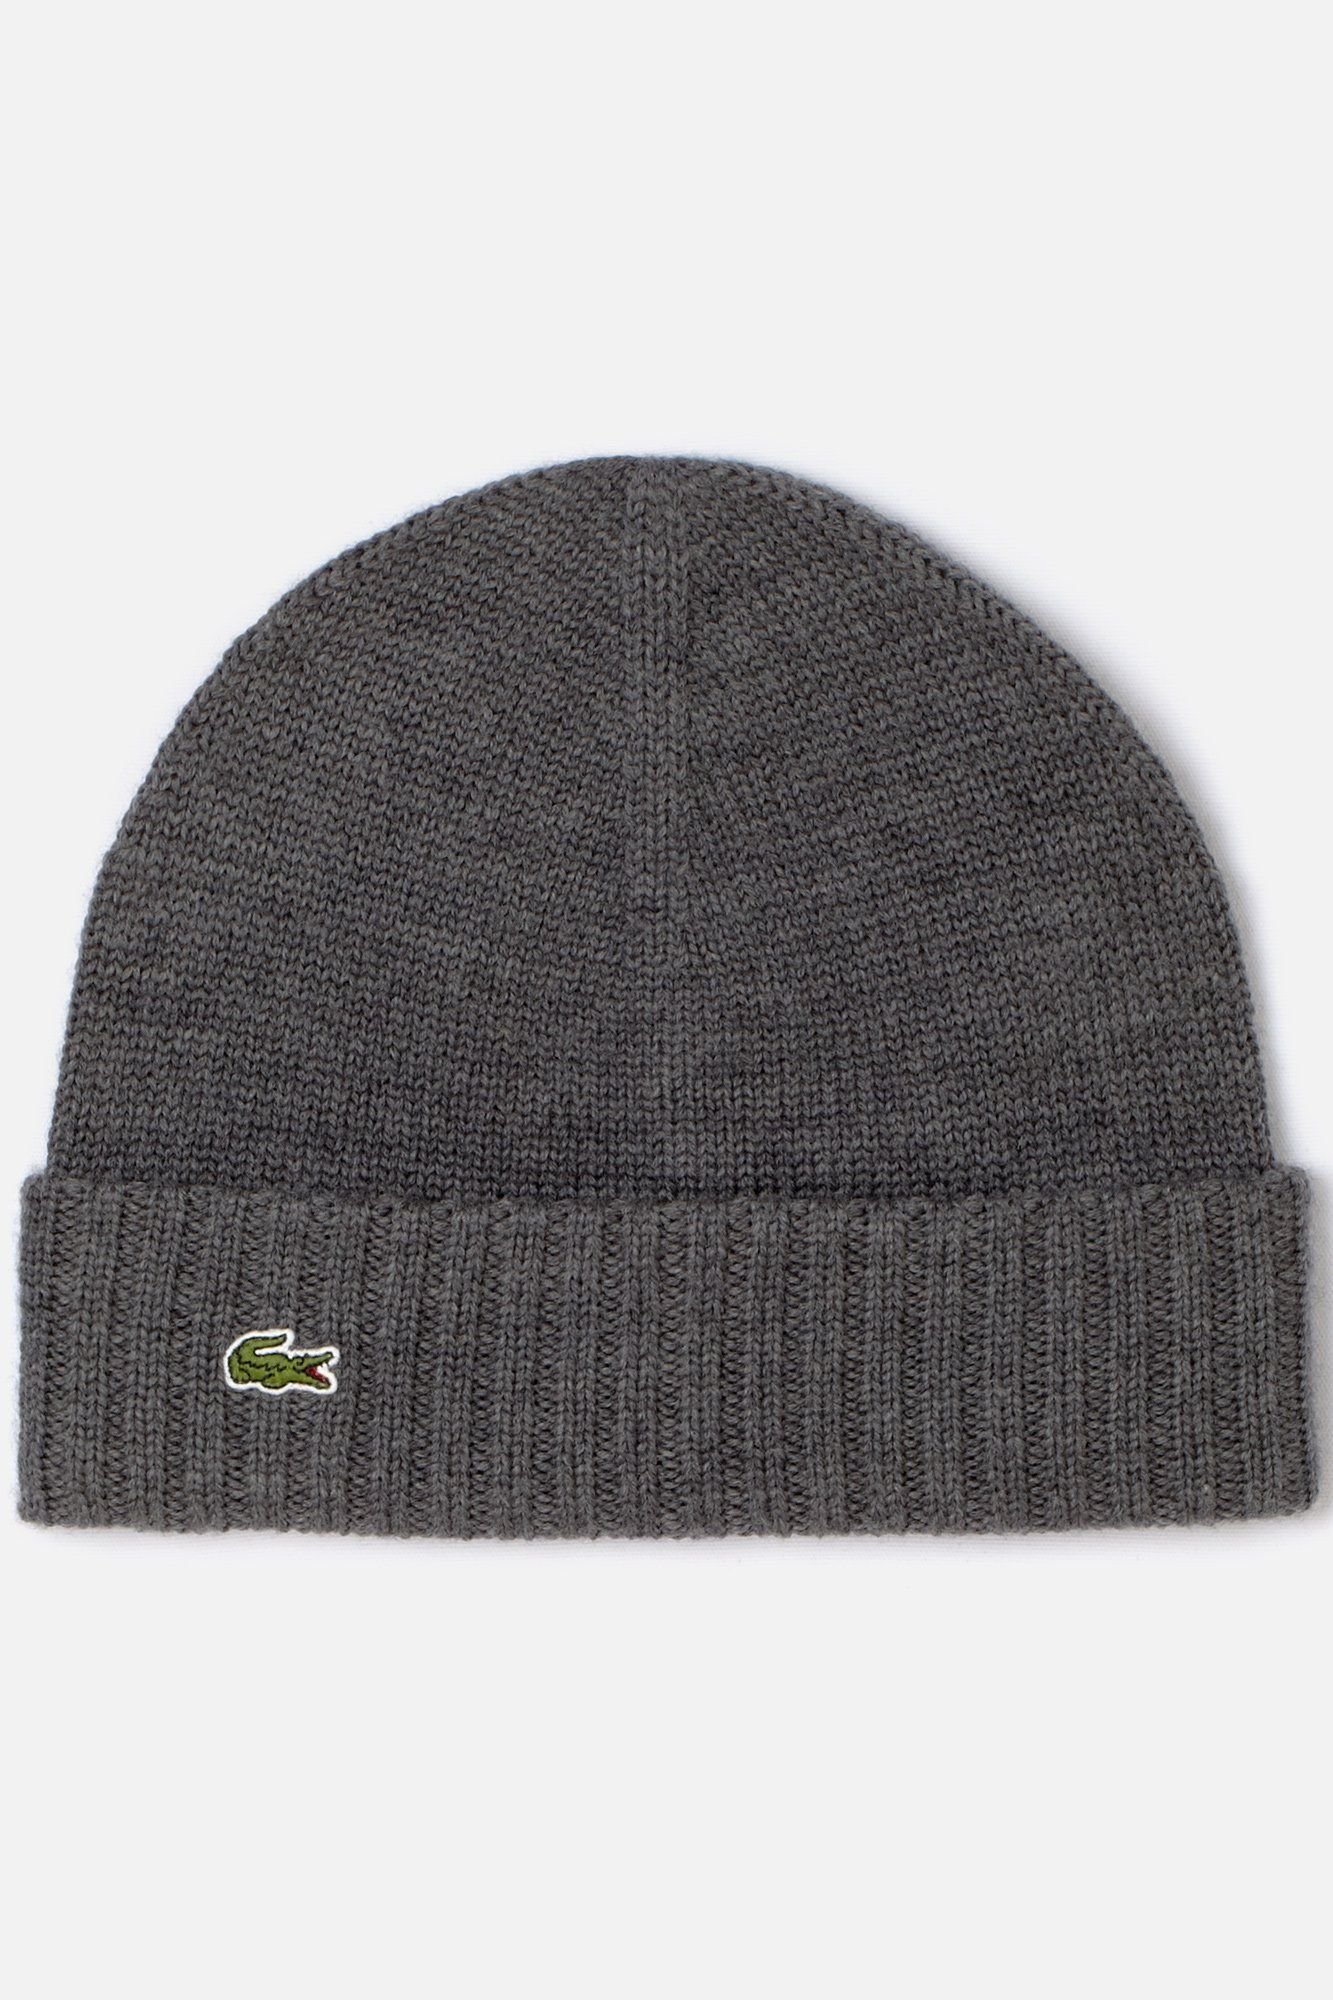 f07a1443f12 Lacoste Men s Green Croc Merino Knit Beanie   Caps   Hats